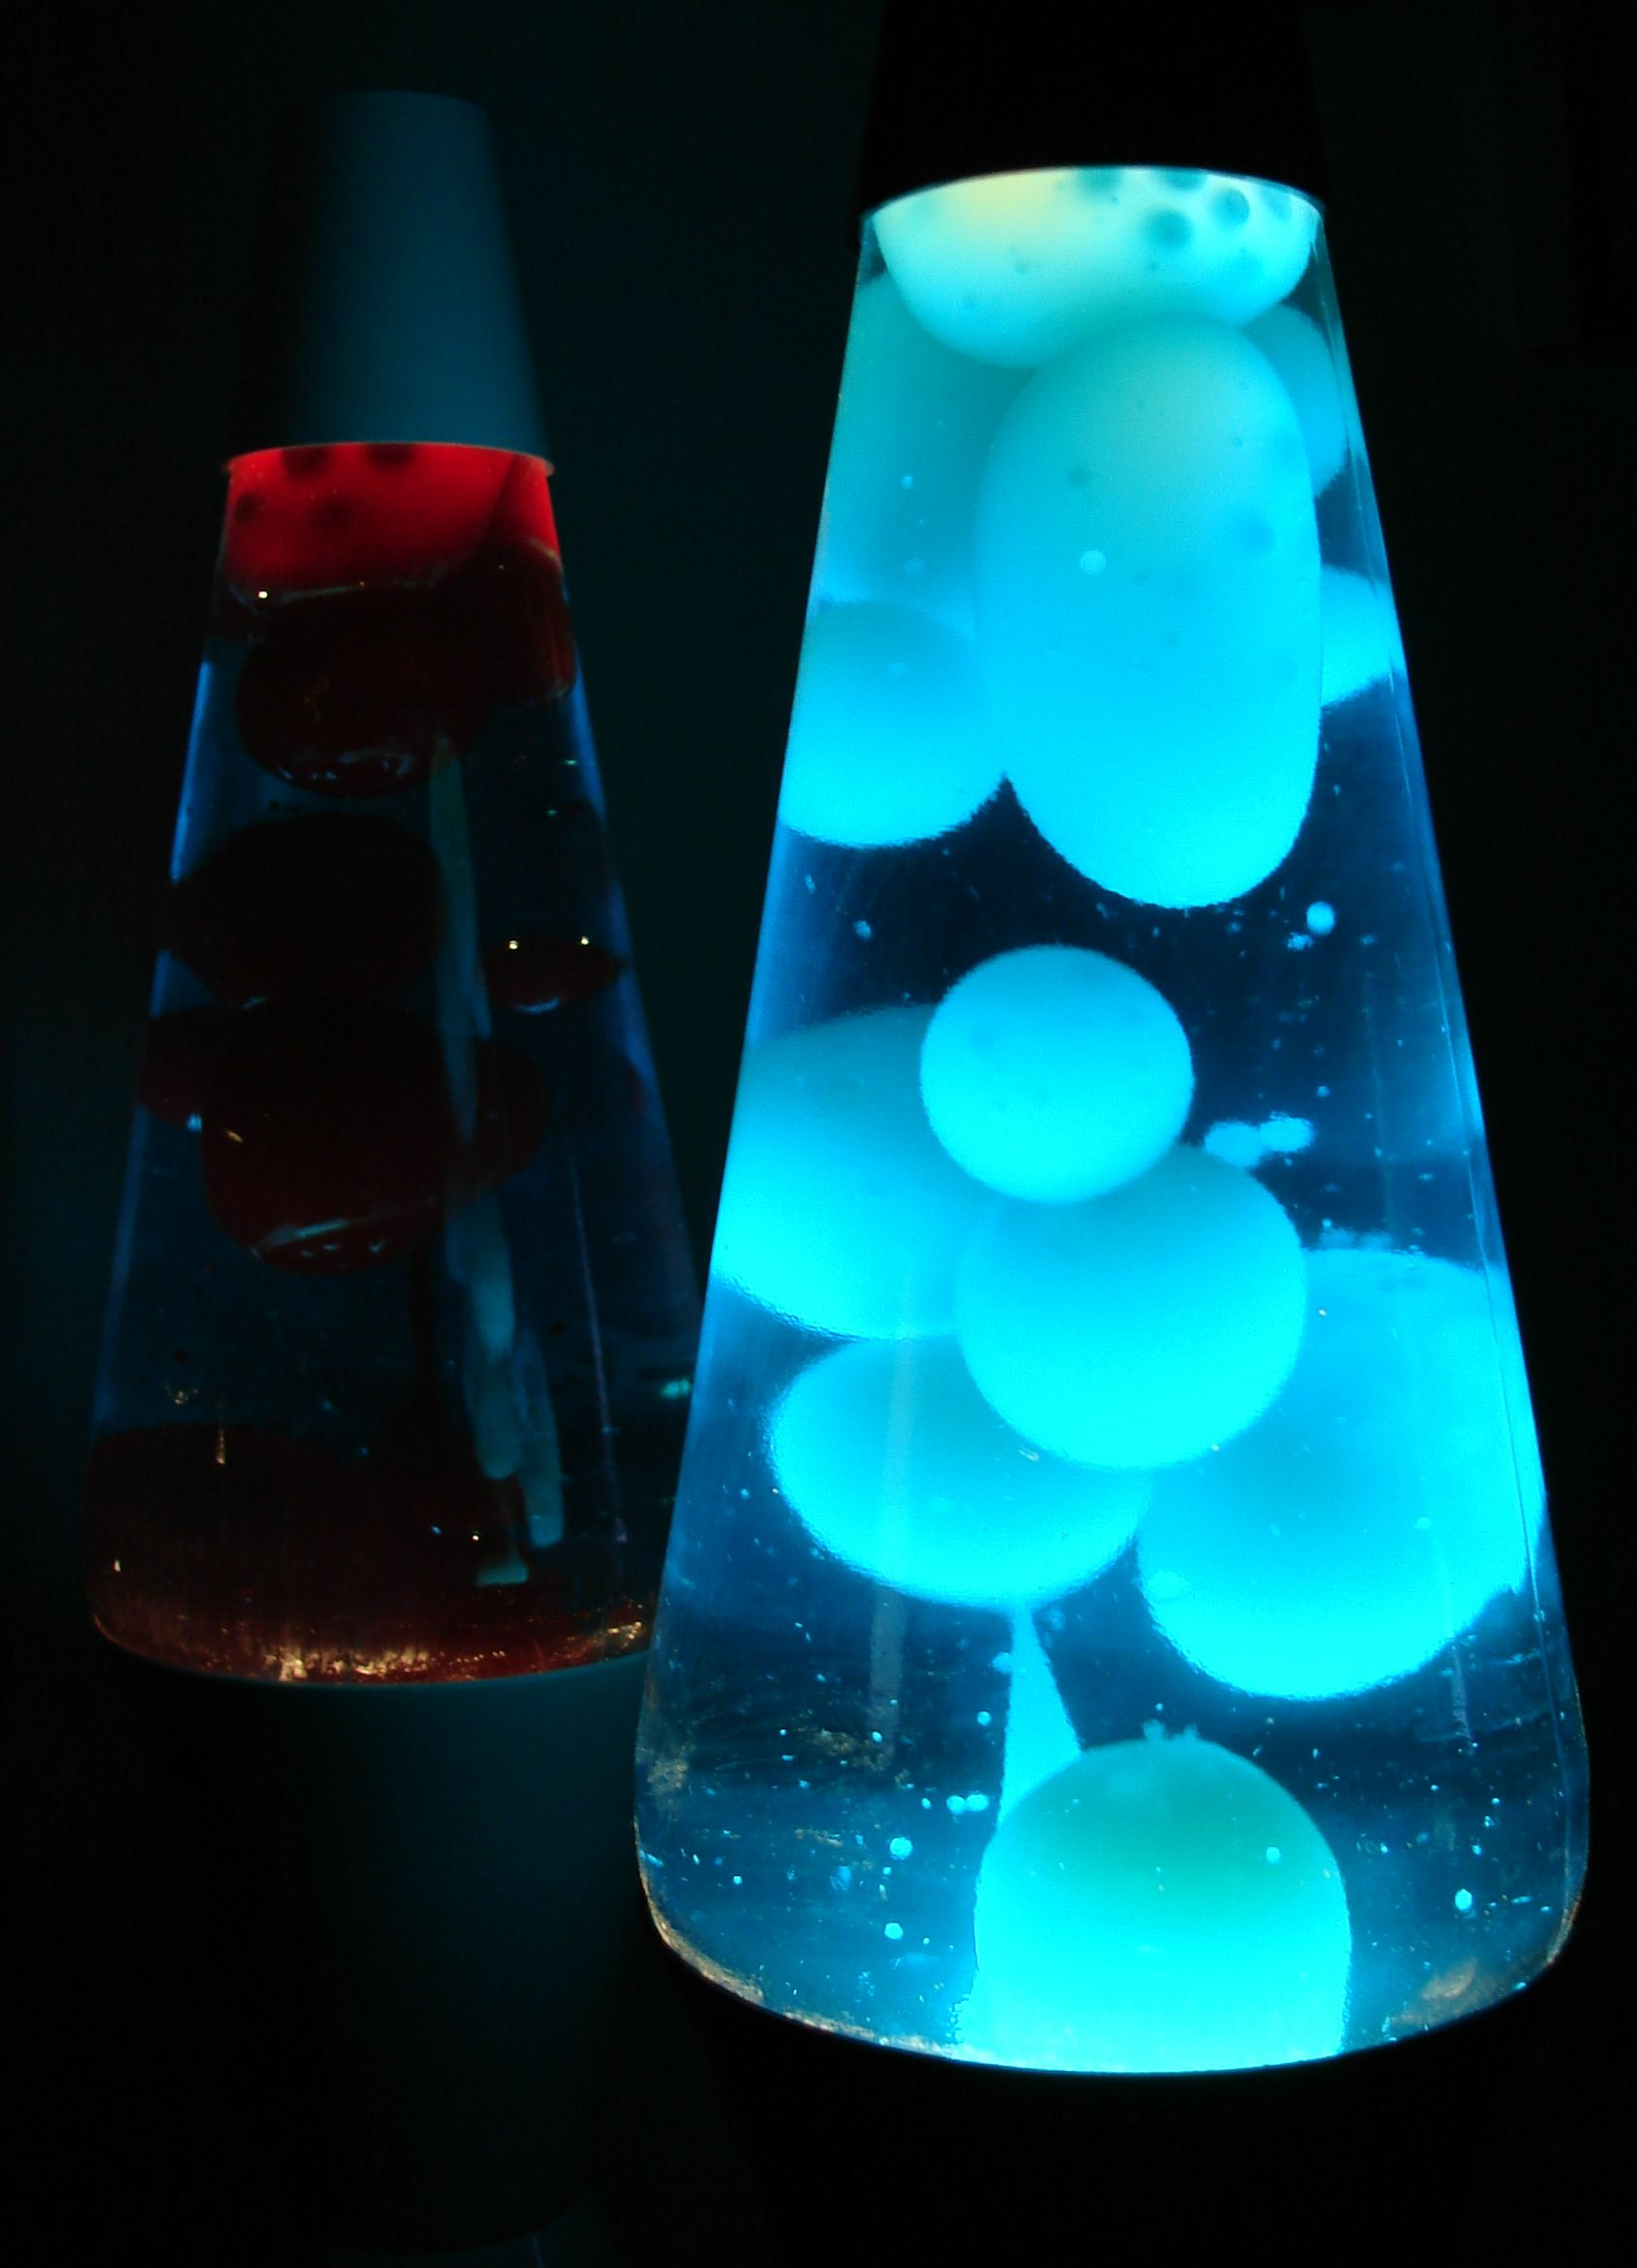 Lava lamp large - Blue Lava Lamp Melted Wax 32 By Fantasystock On Deviantart